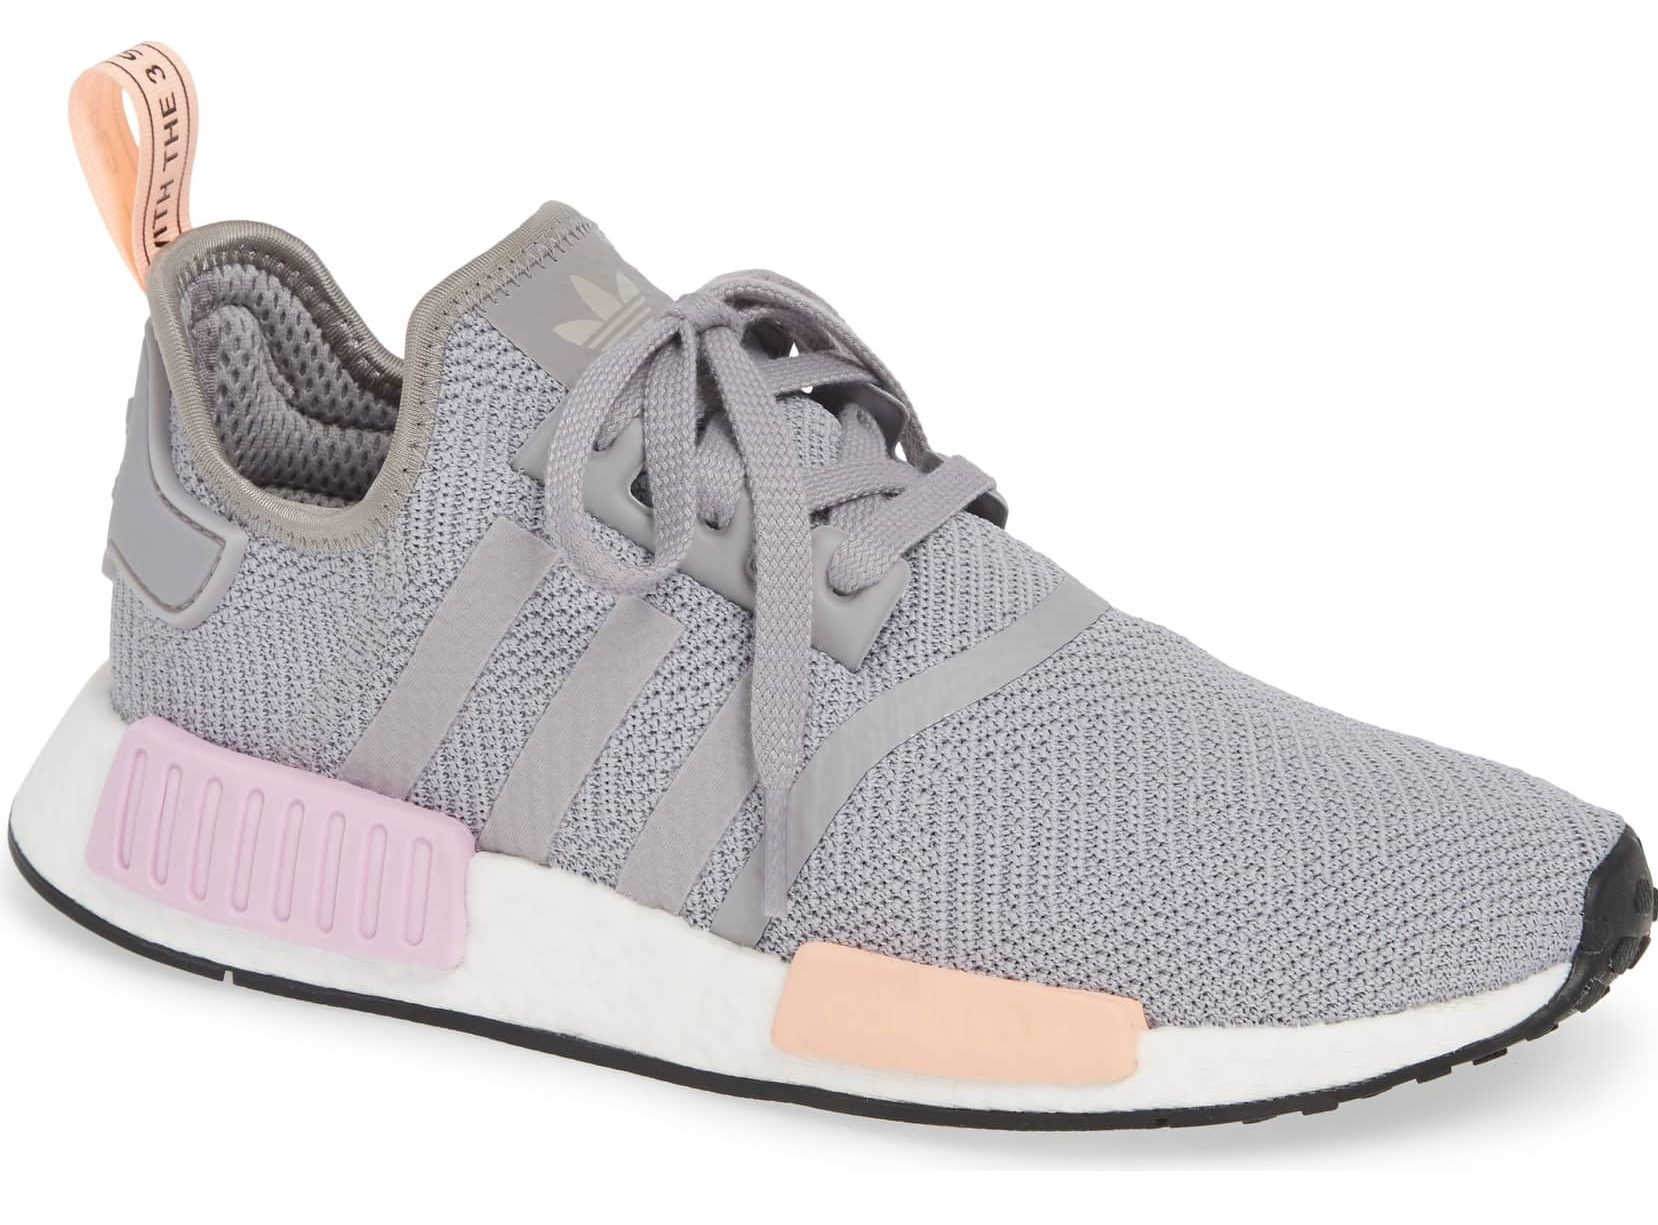 adidas sneaker grey pink and peach